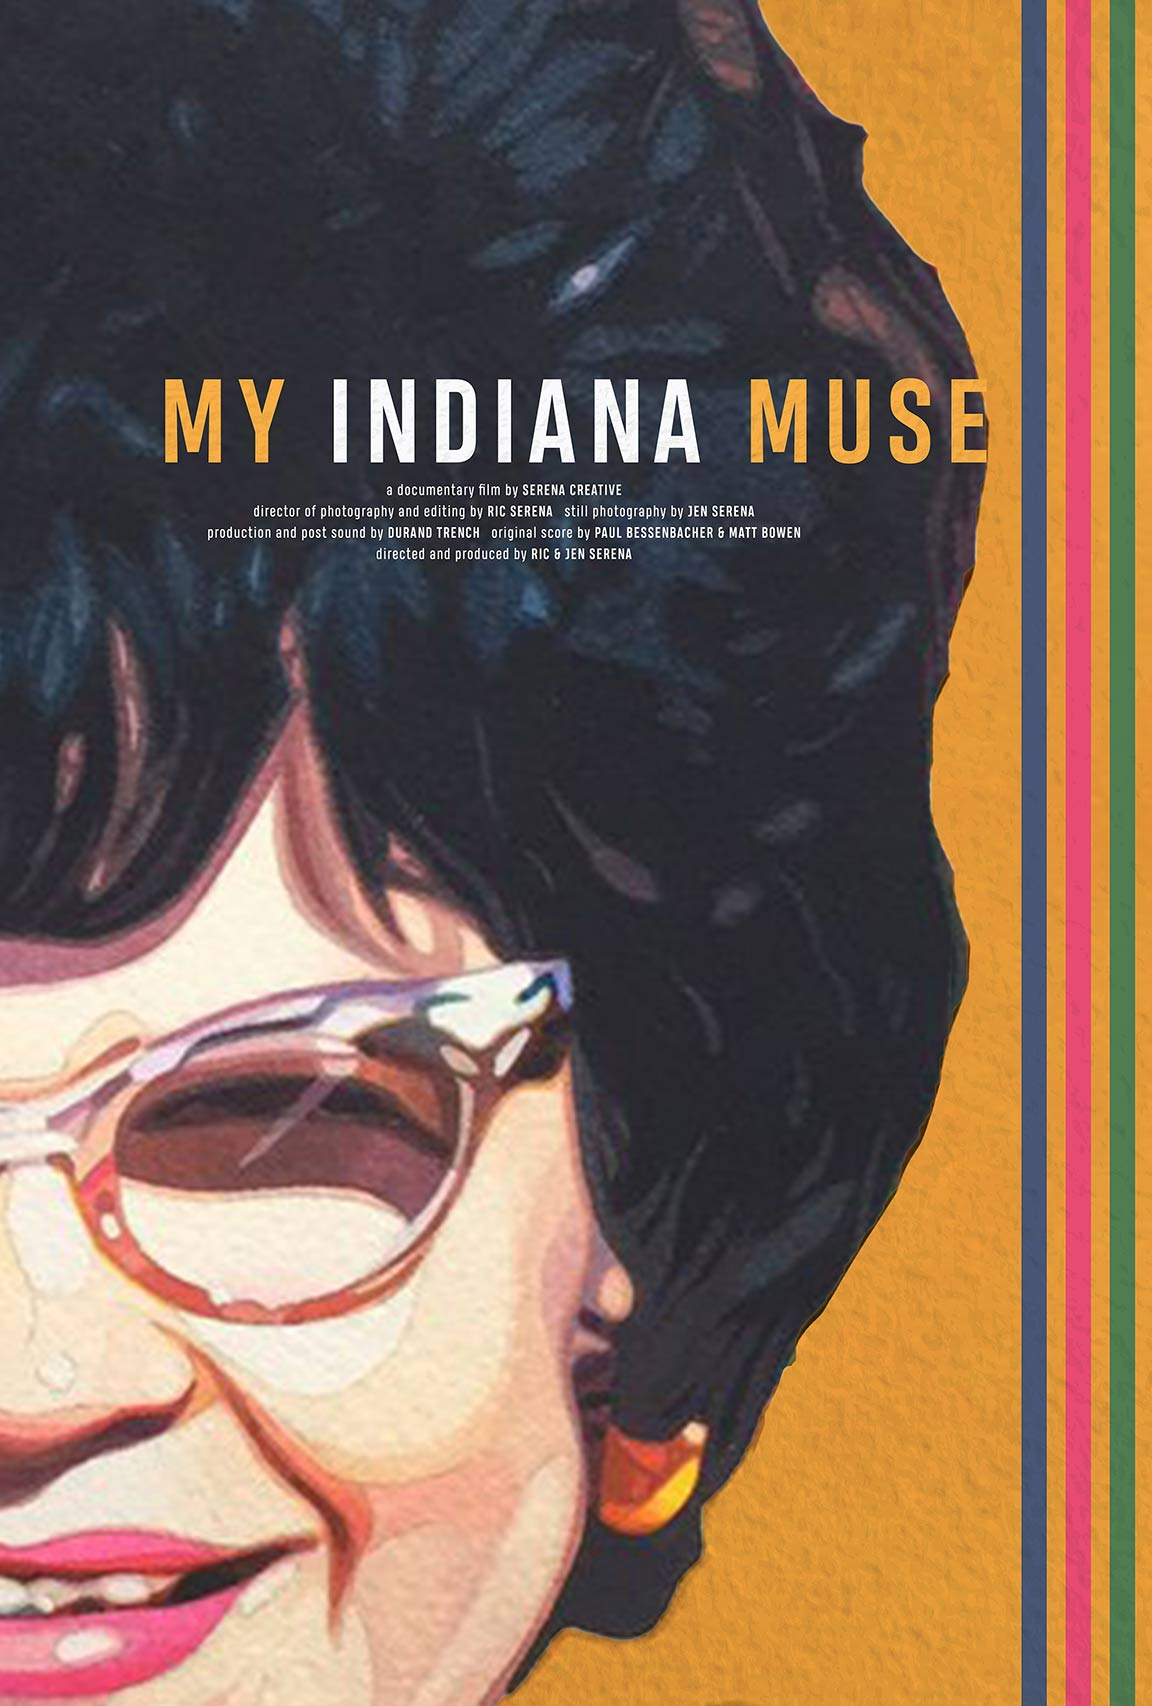 My Indiana Muse Poster #1